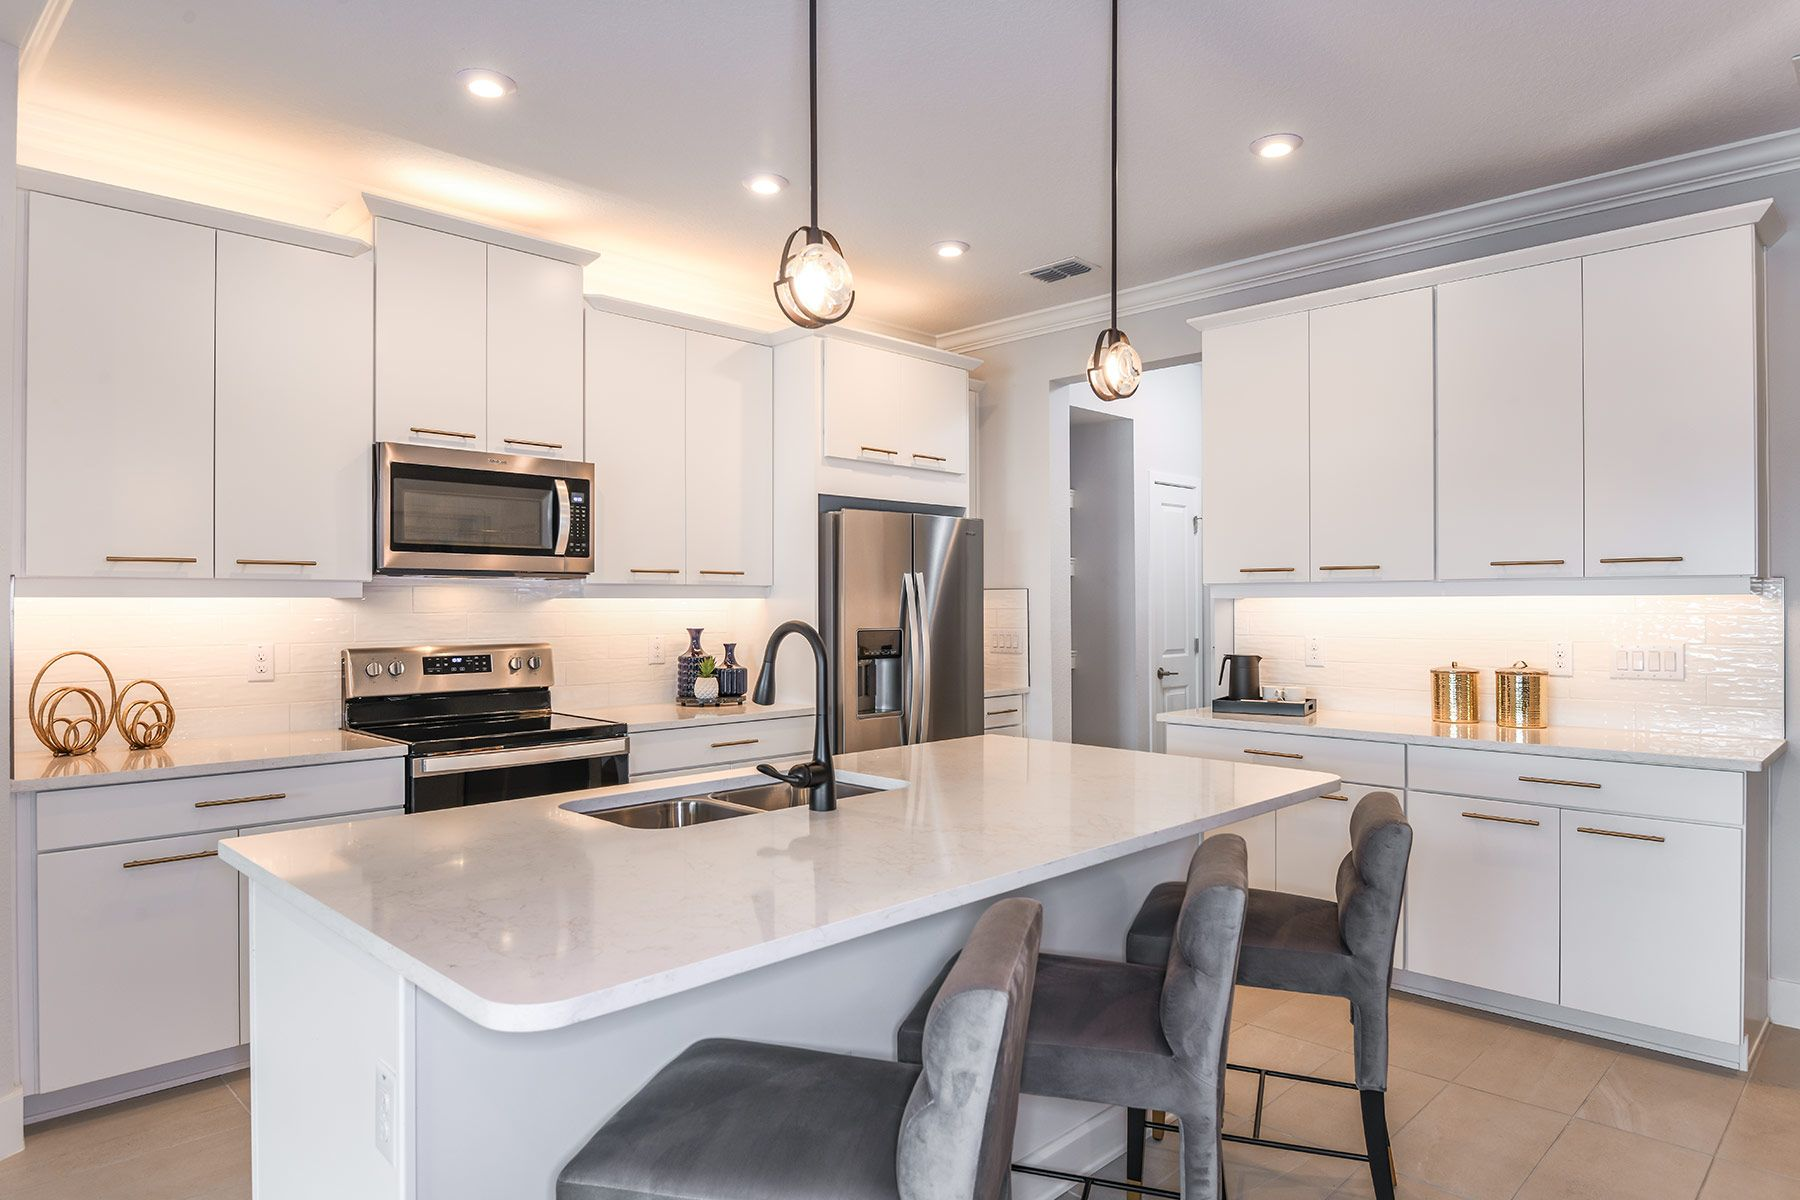 Kitchen featured in the Marianna By Mattamy Homes in Tampa-St. Petersburg, FL